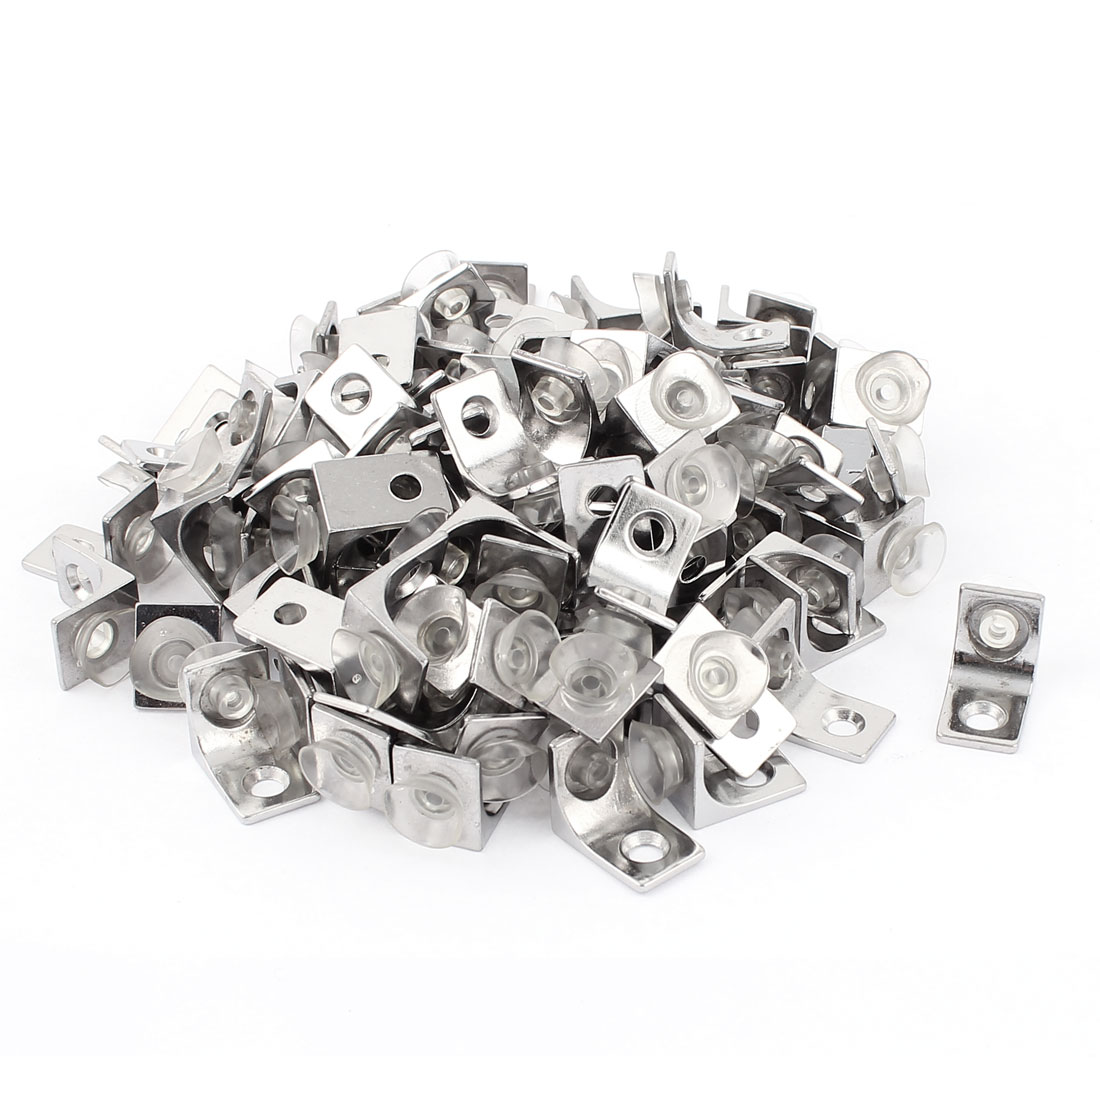 100 Pcs Glass Shelf Right Angle Suction Cup Fixing Fastener Clip Clamp Bracket